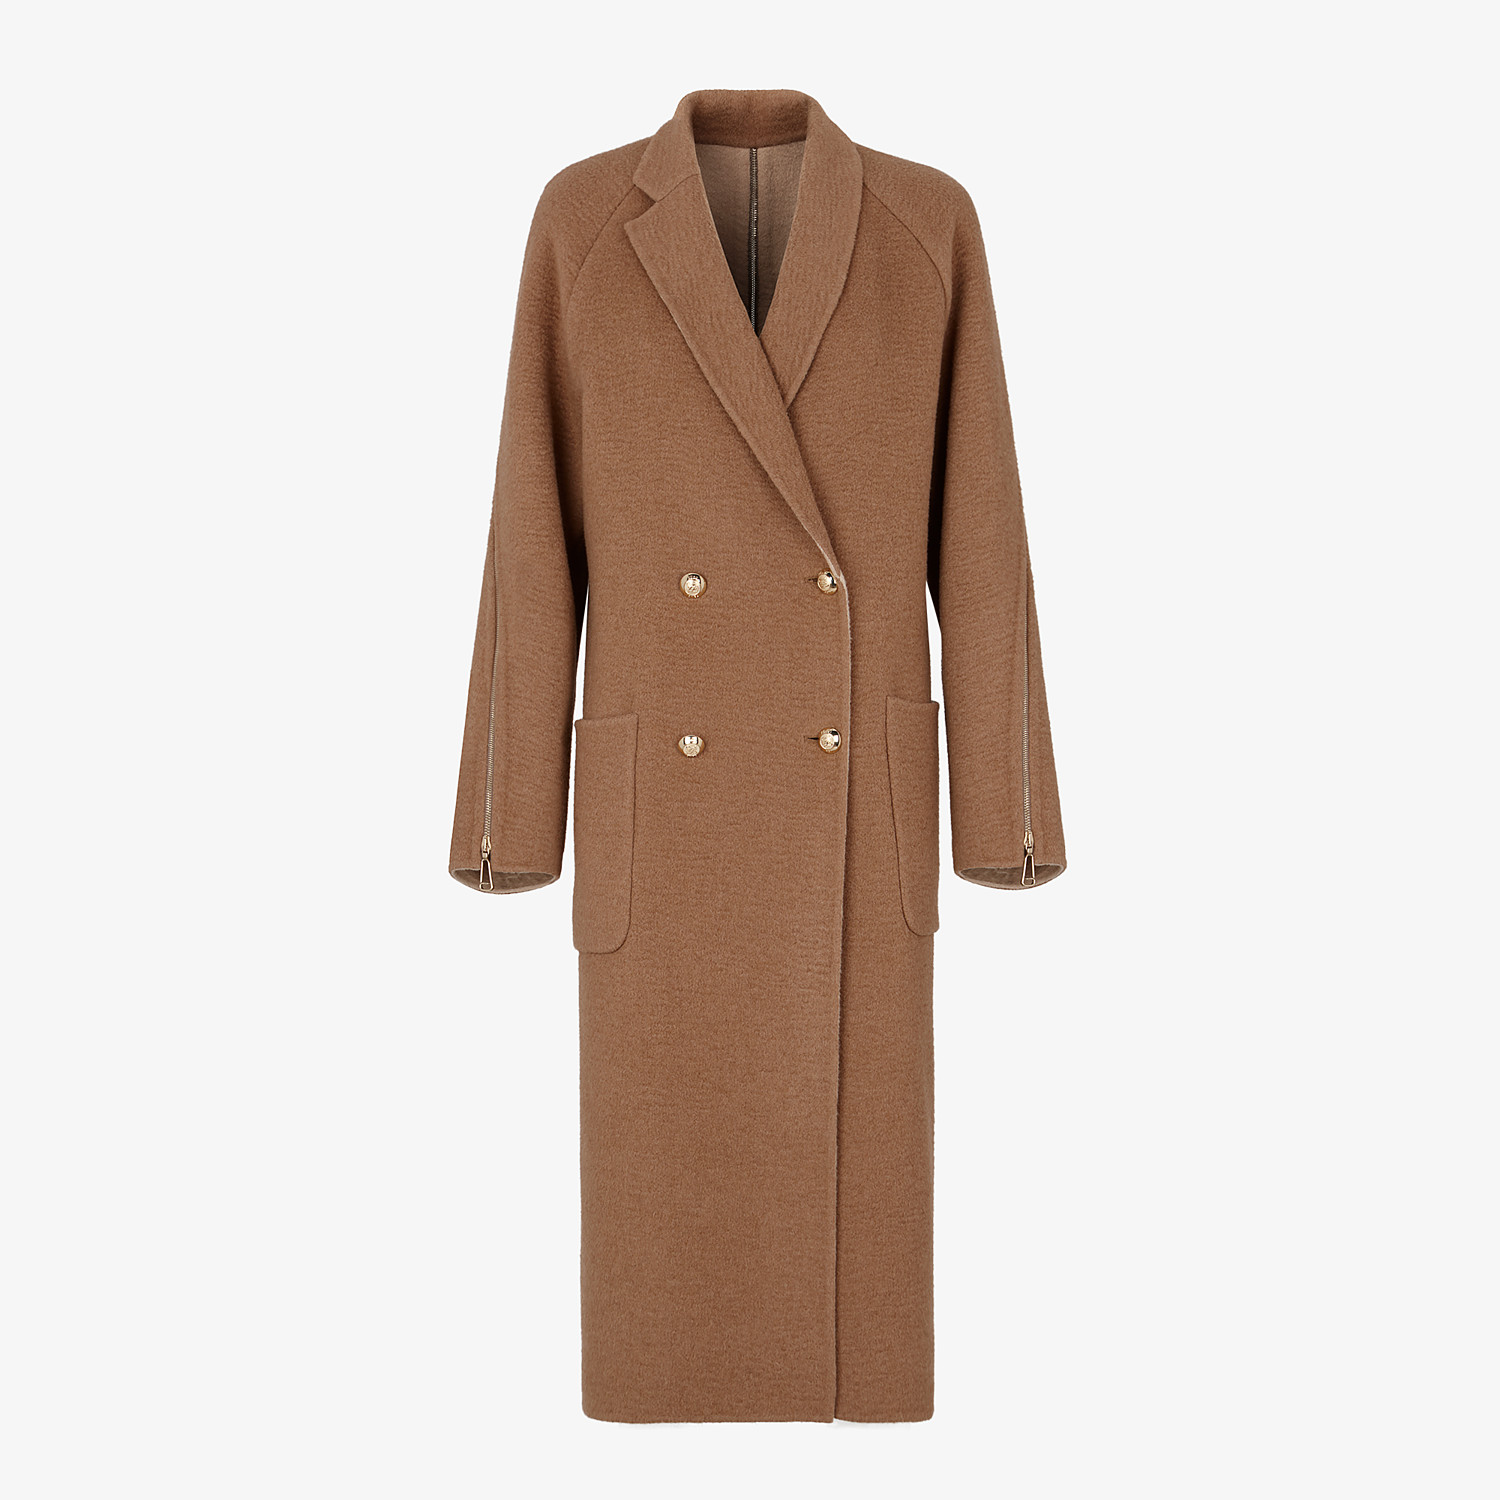 FENDI COAT - Beige camel coat - view 1 detail